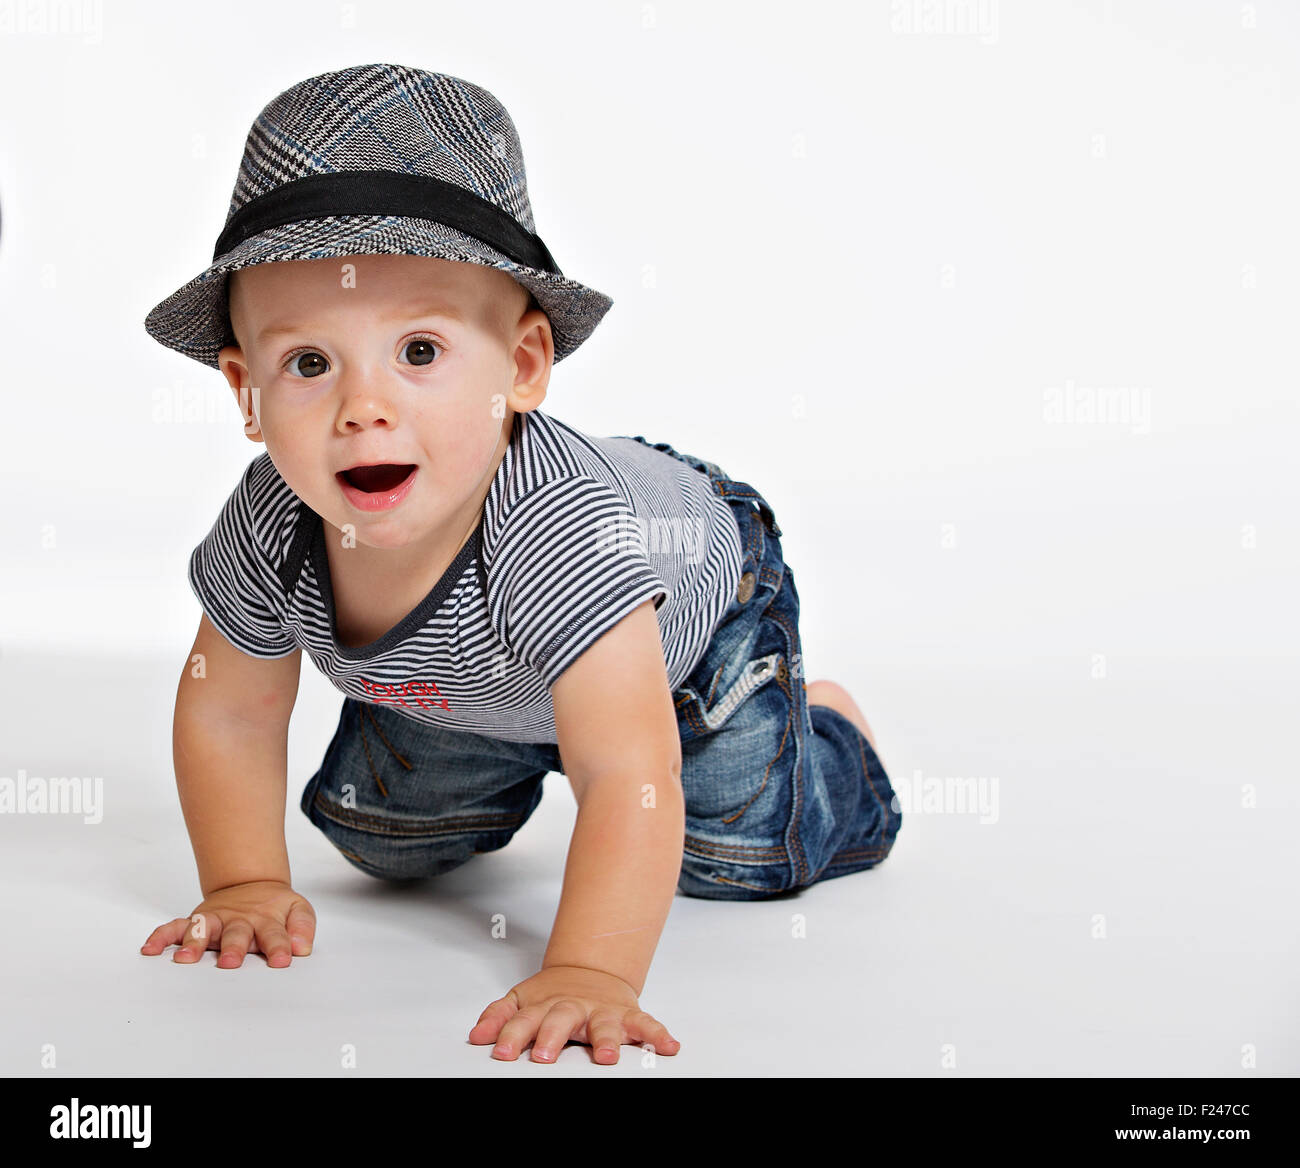 7c9af686e 1-year-old child, one year, 1st year, hat Stock Photo: 87374796 - Alamy